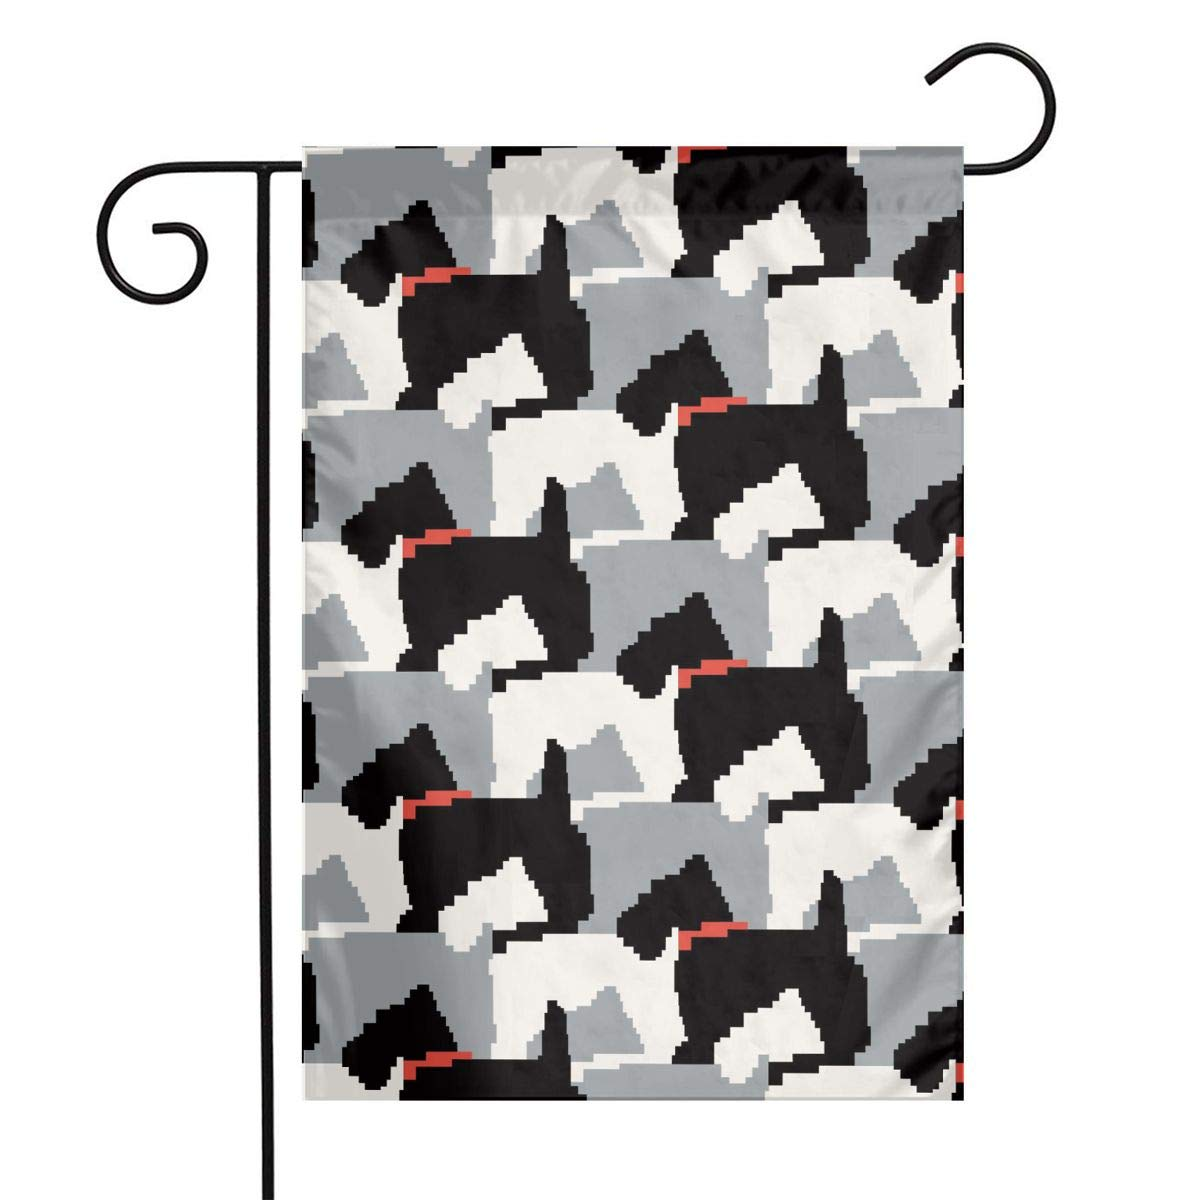 Black Scottie Dogs Garden Flags House Indoor & Outdoor Welcome Decorations,Waterproof Polyester Yard Decorative for Game Family Party Banner